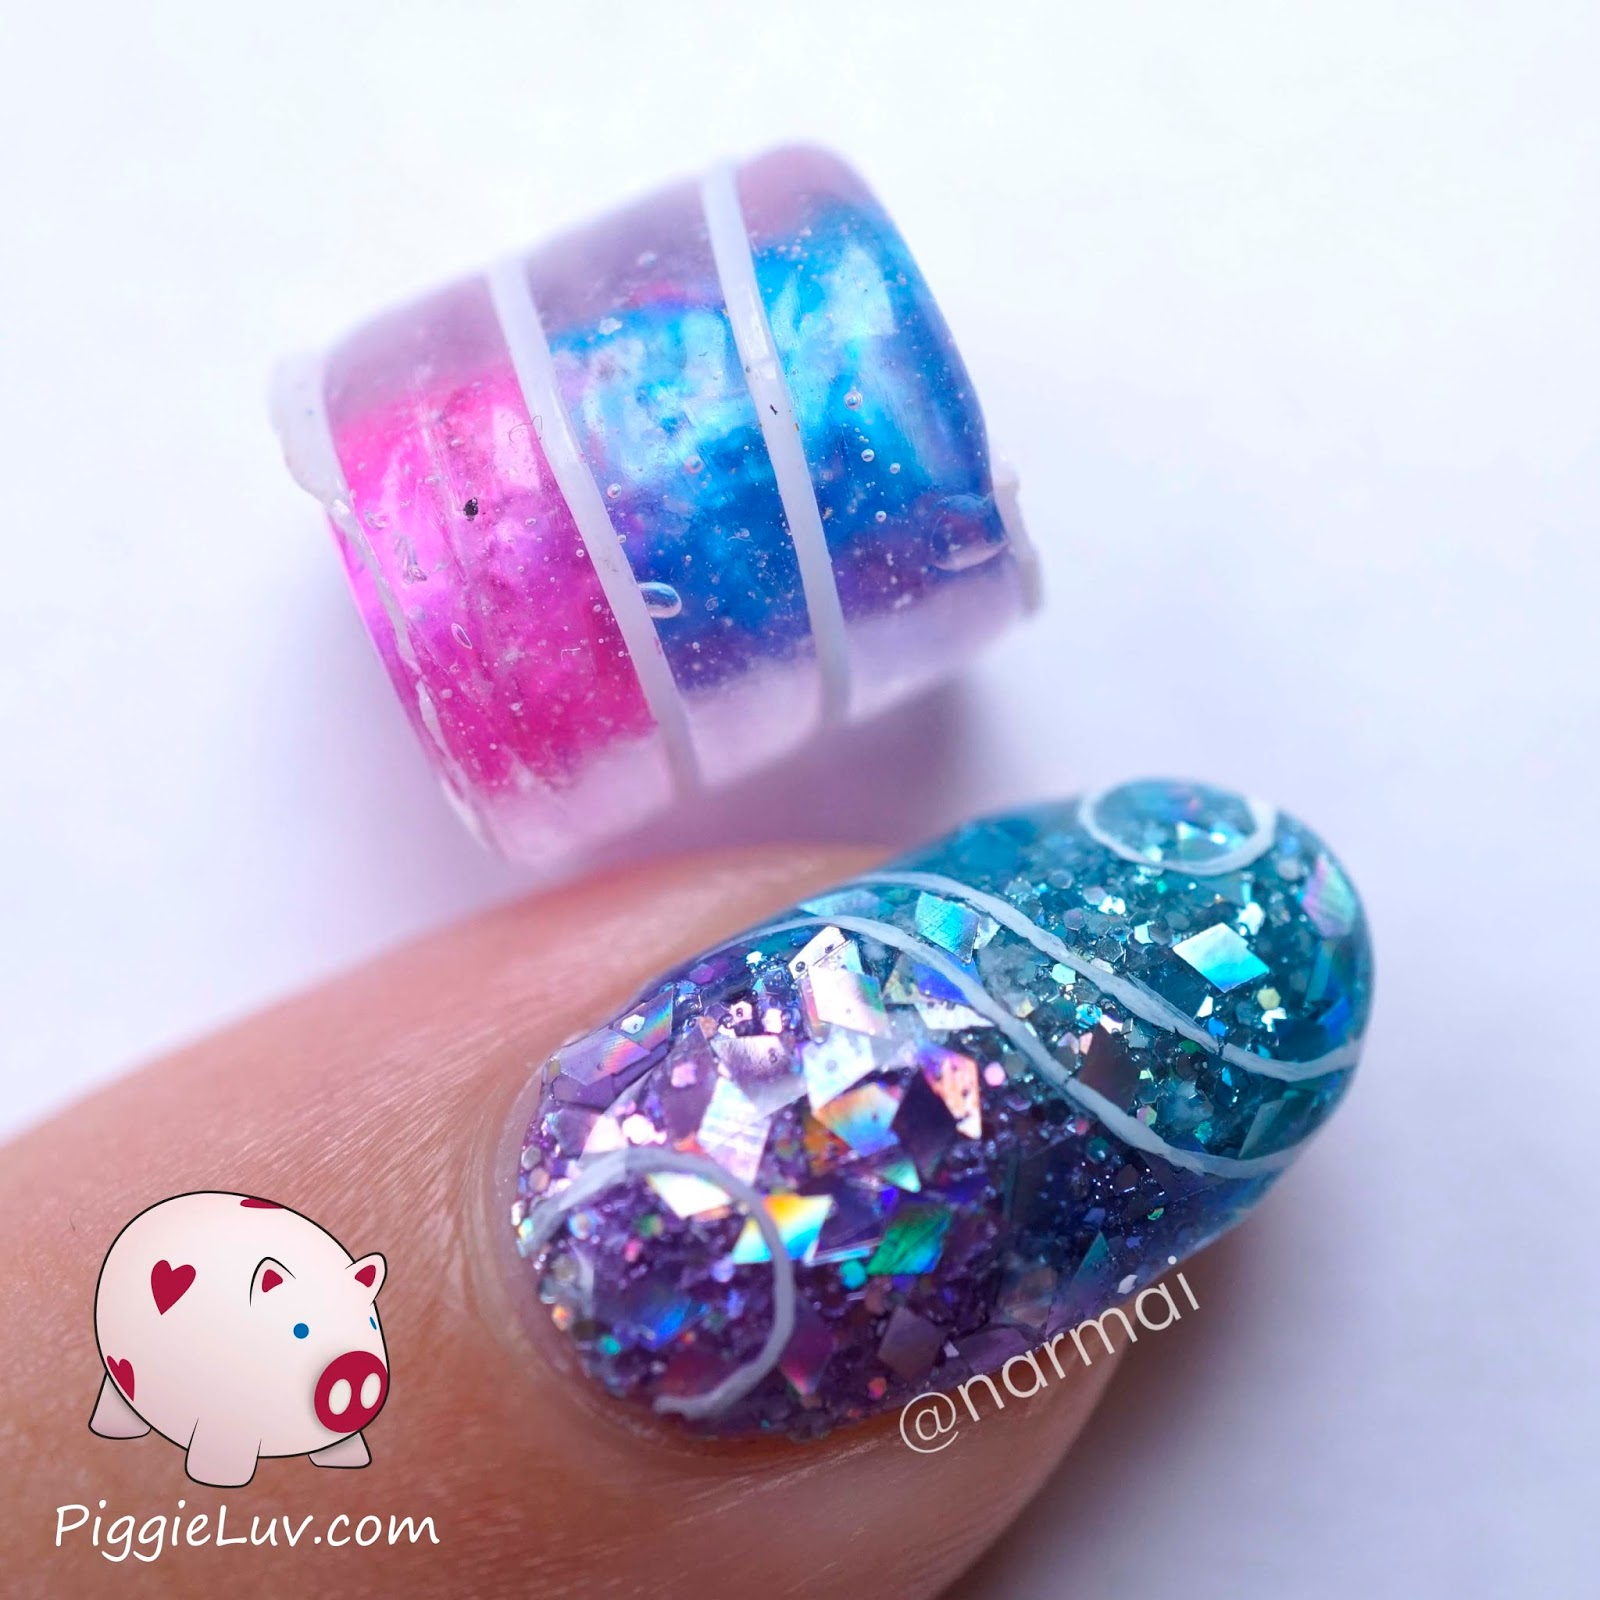 PiggieLuv: Glitter jellies nail art with OPI sheer tints!!